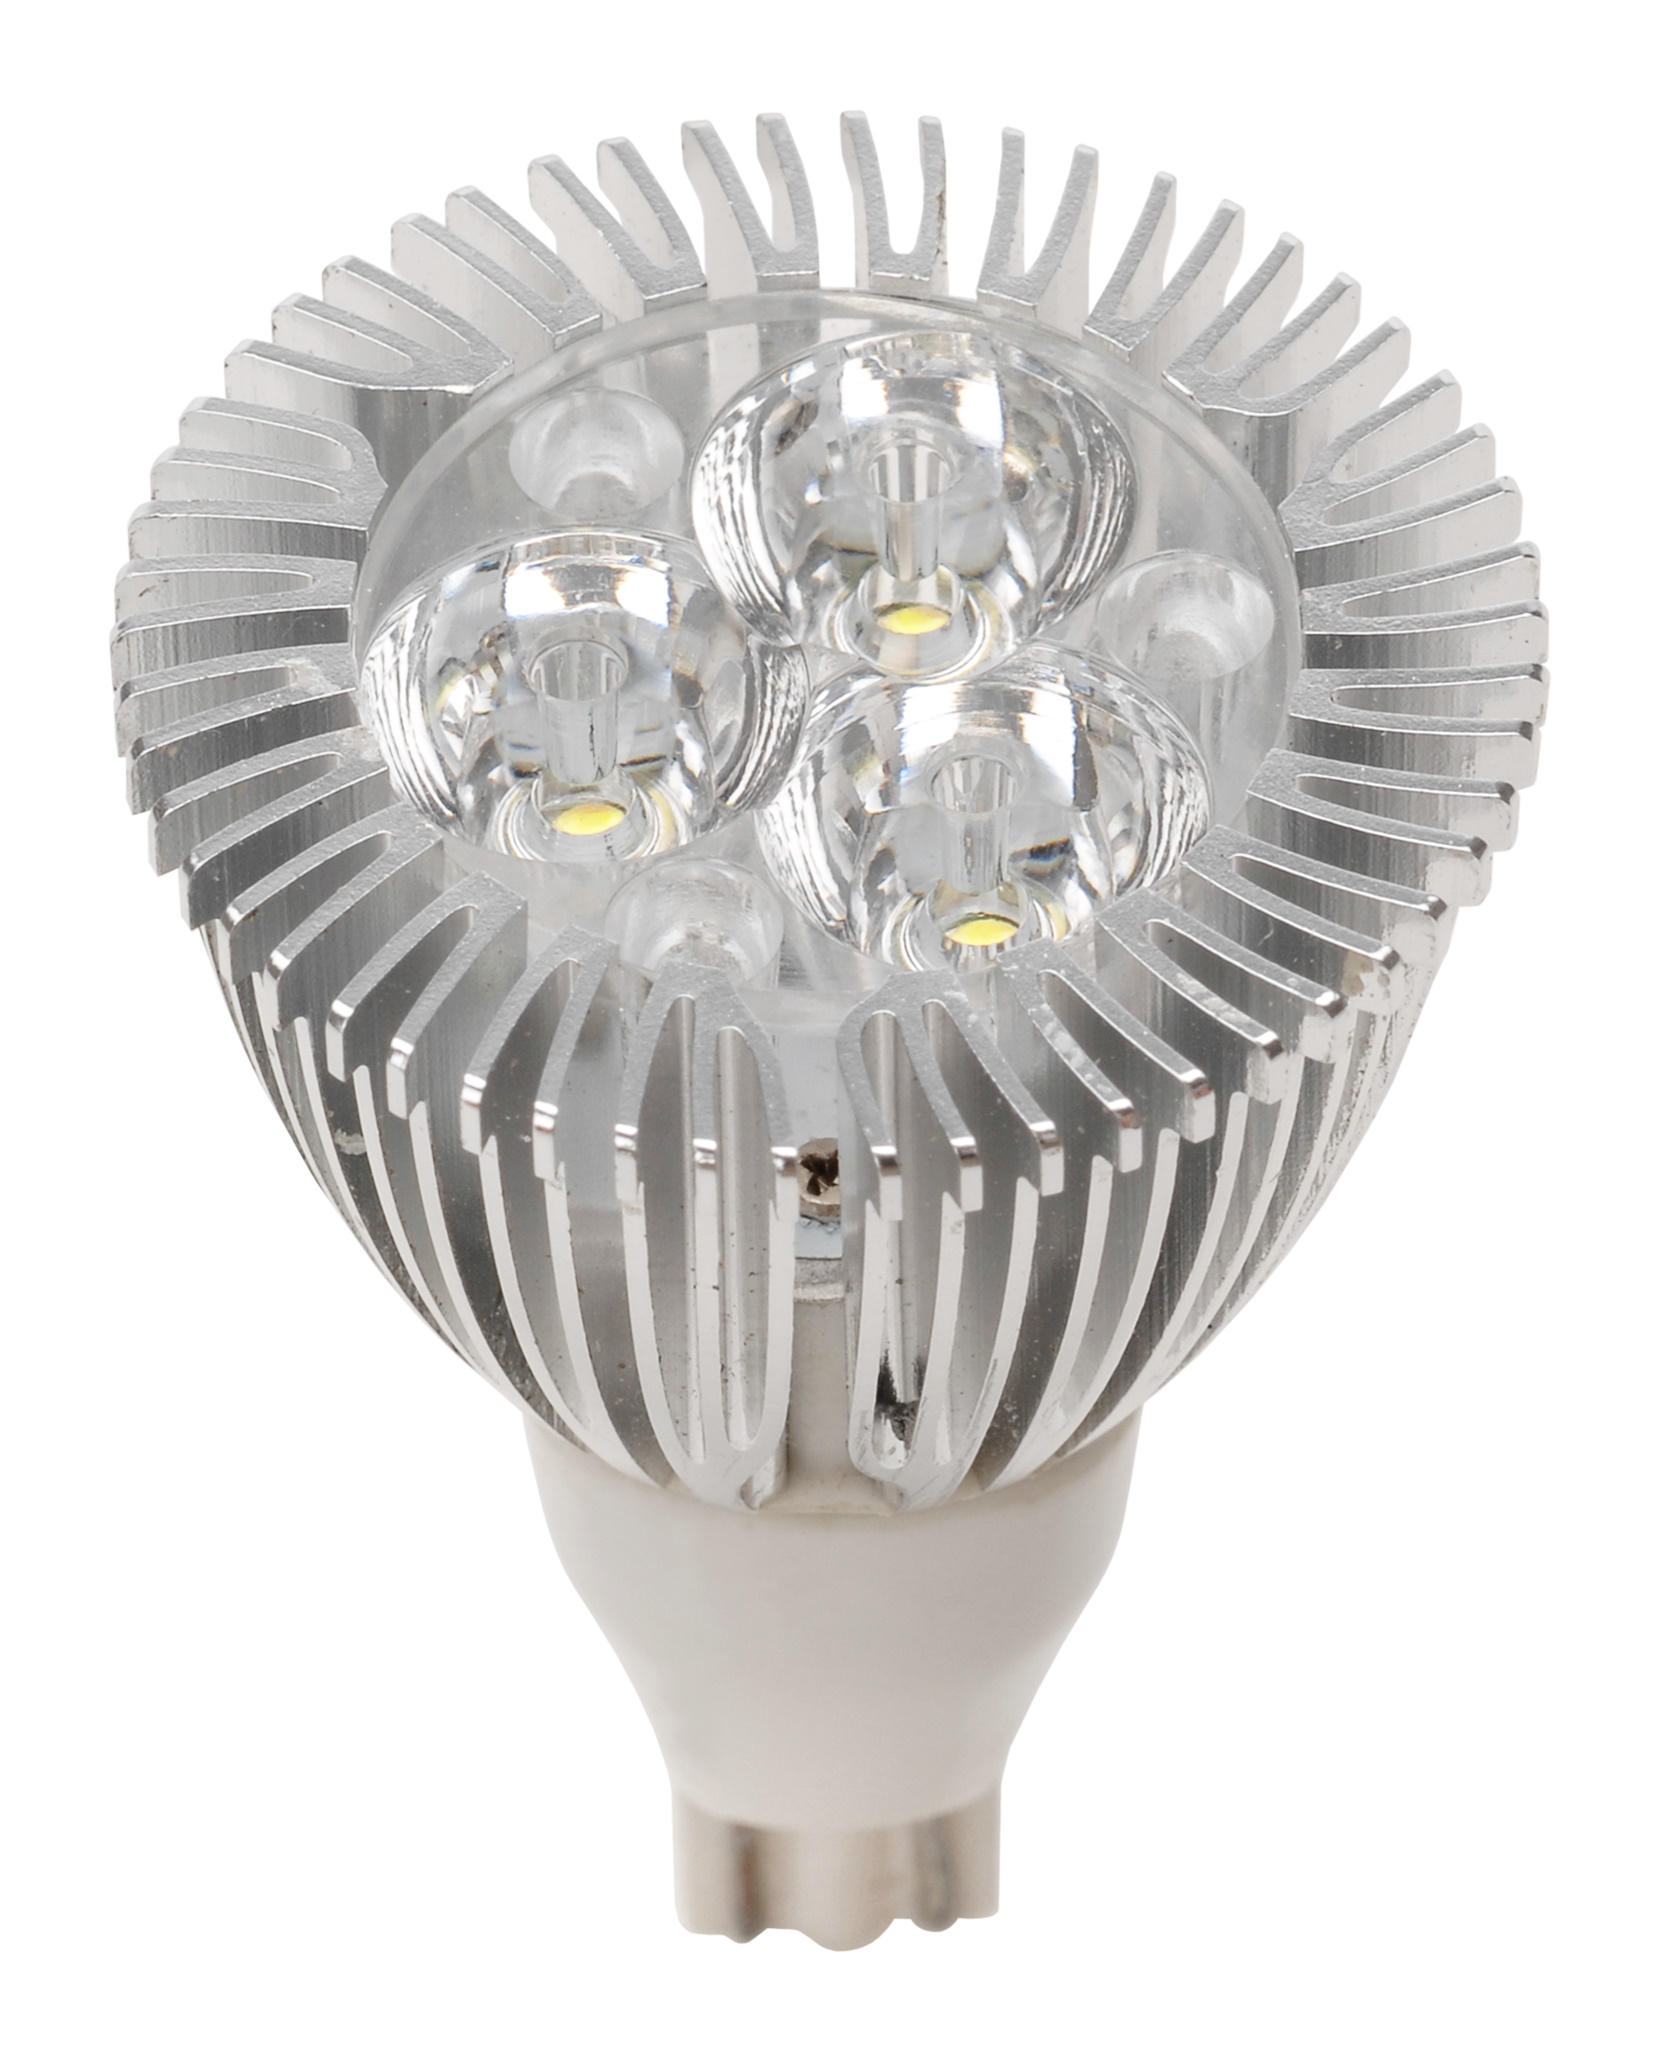 016-921-220 AP Products Multi Purpose Light Bulb- LED Replacement For